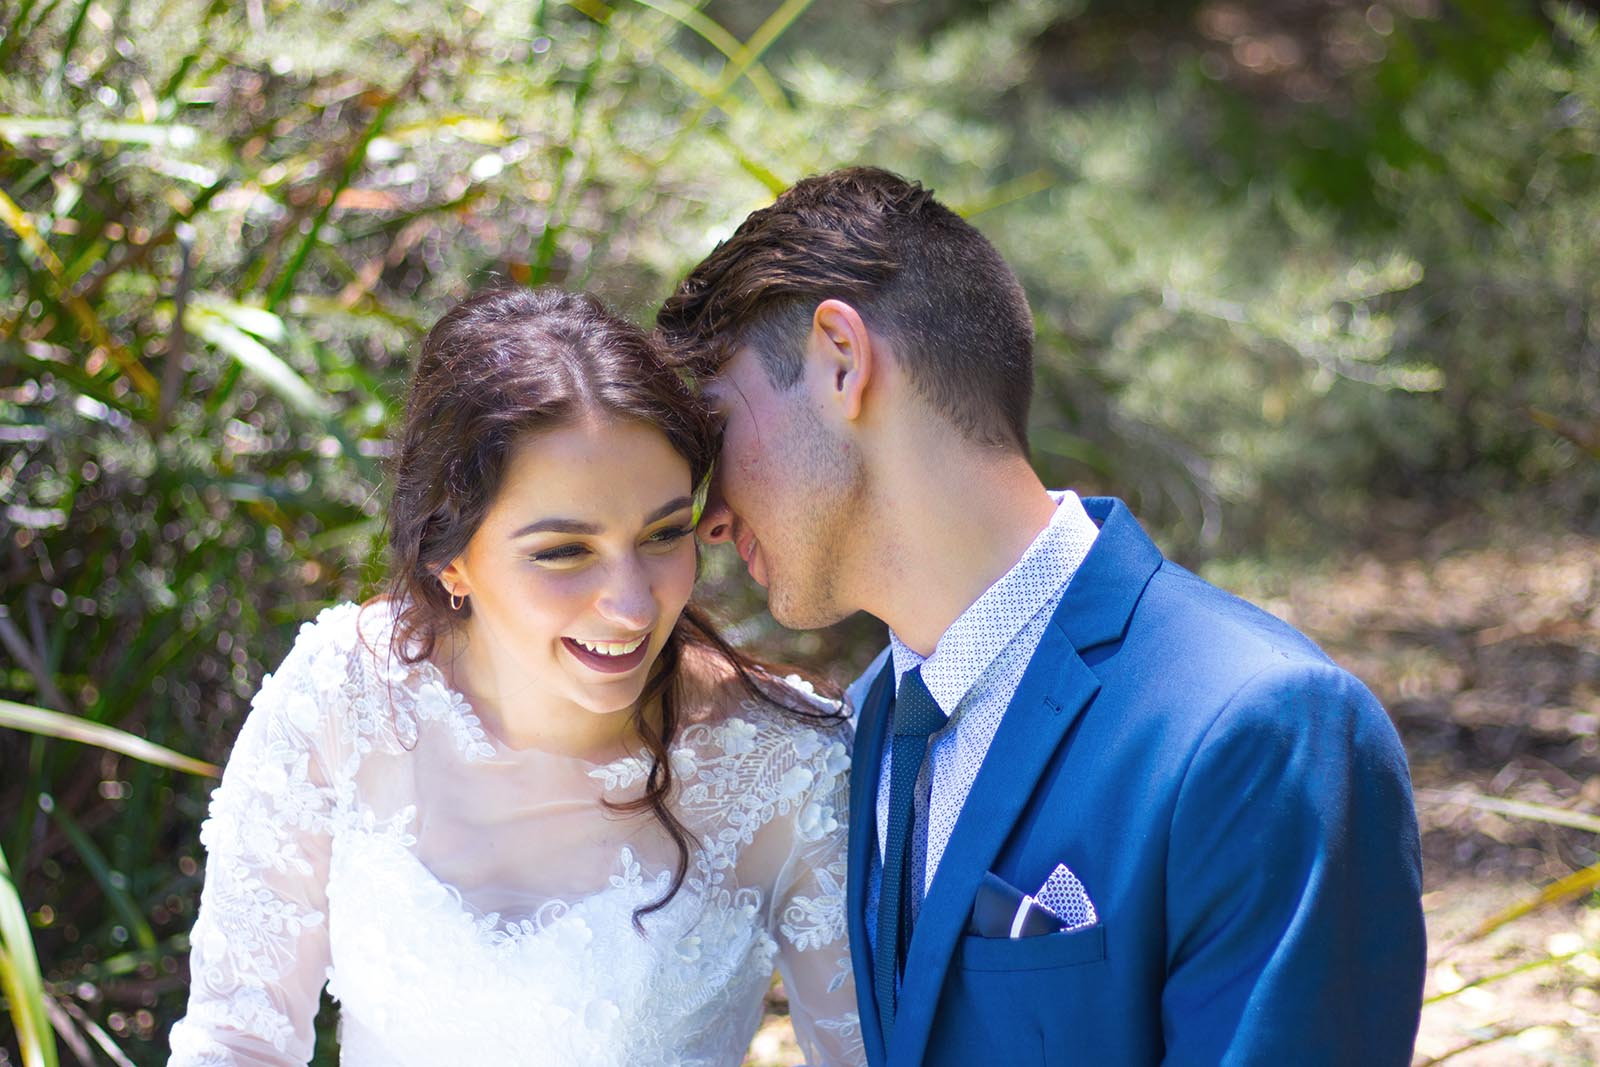 Groom whispers into his bride's ear